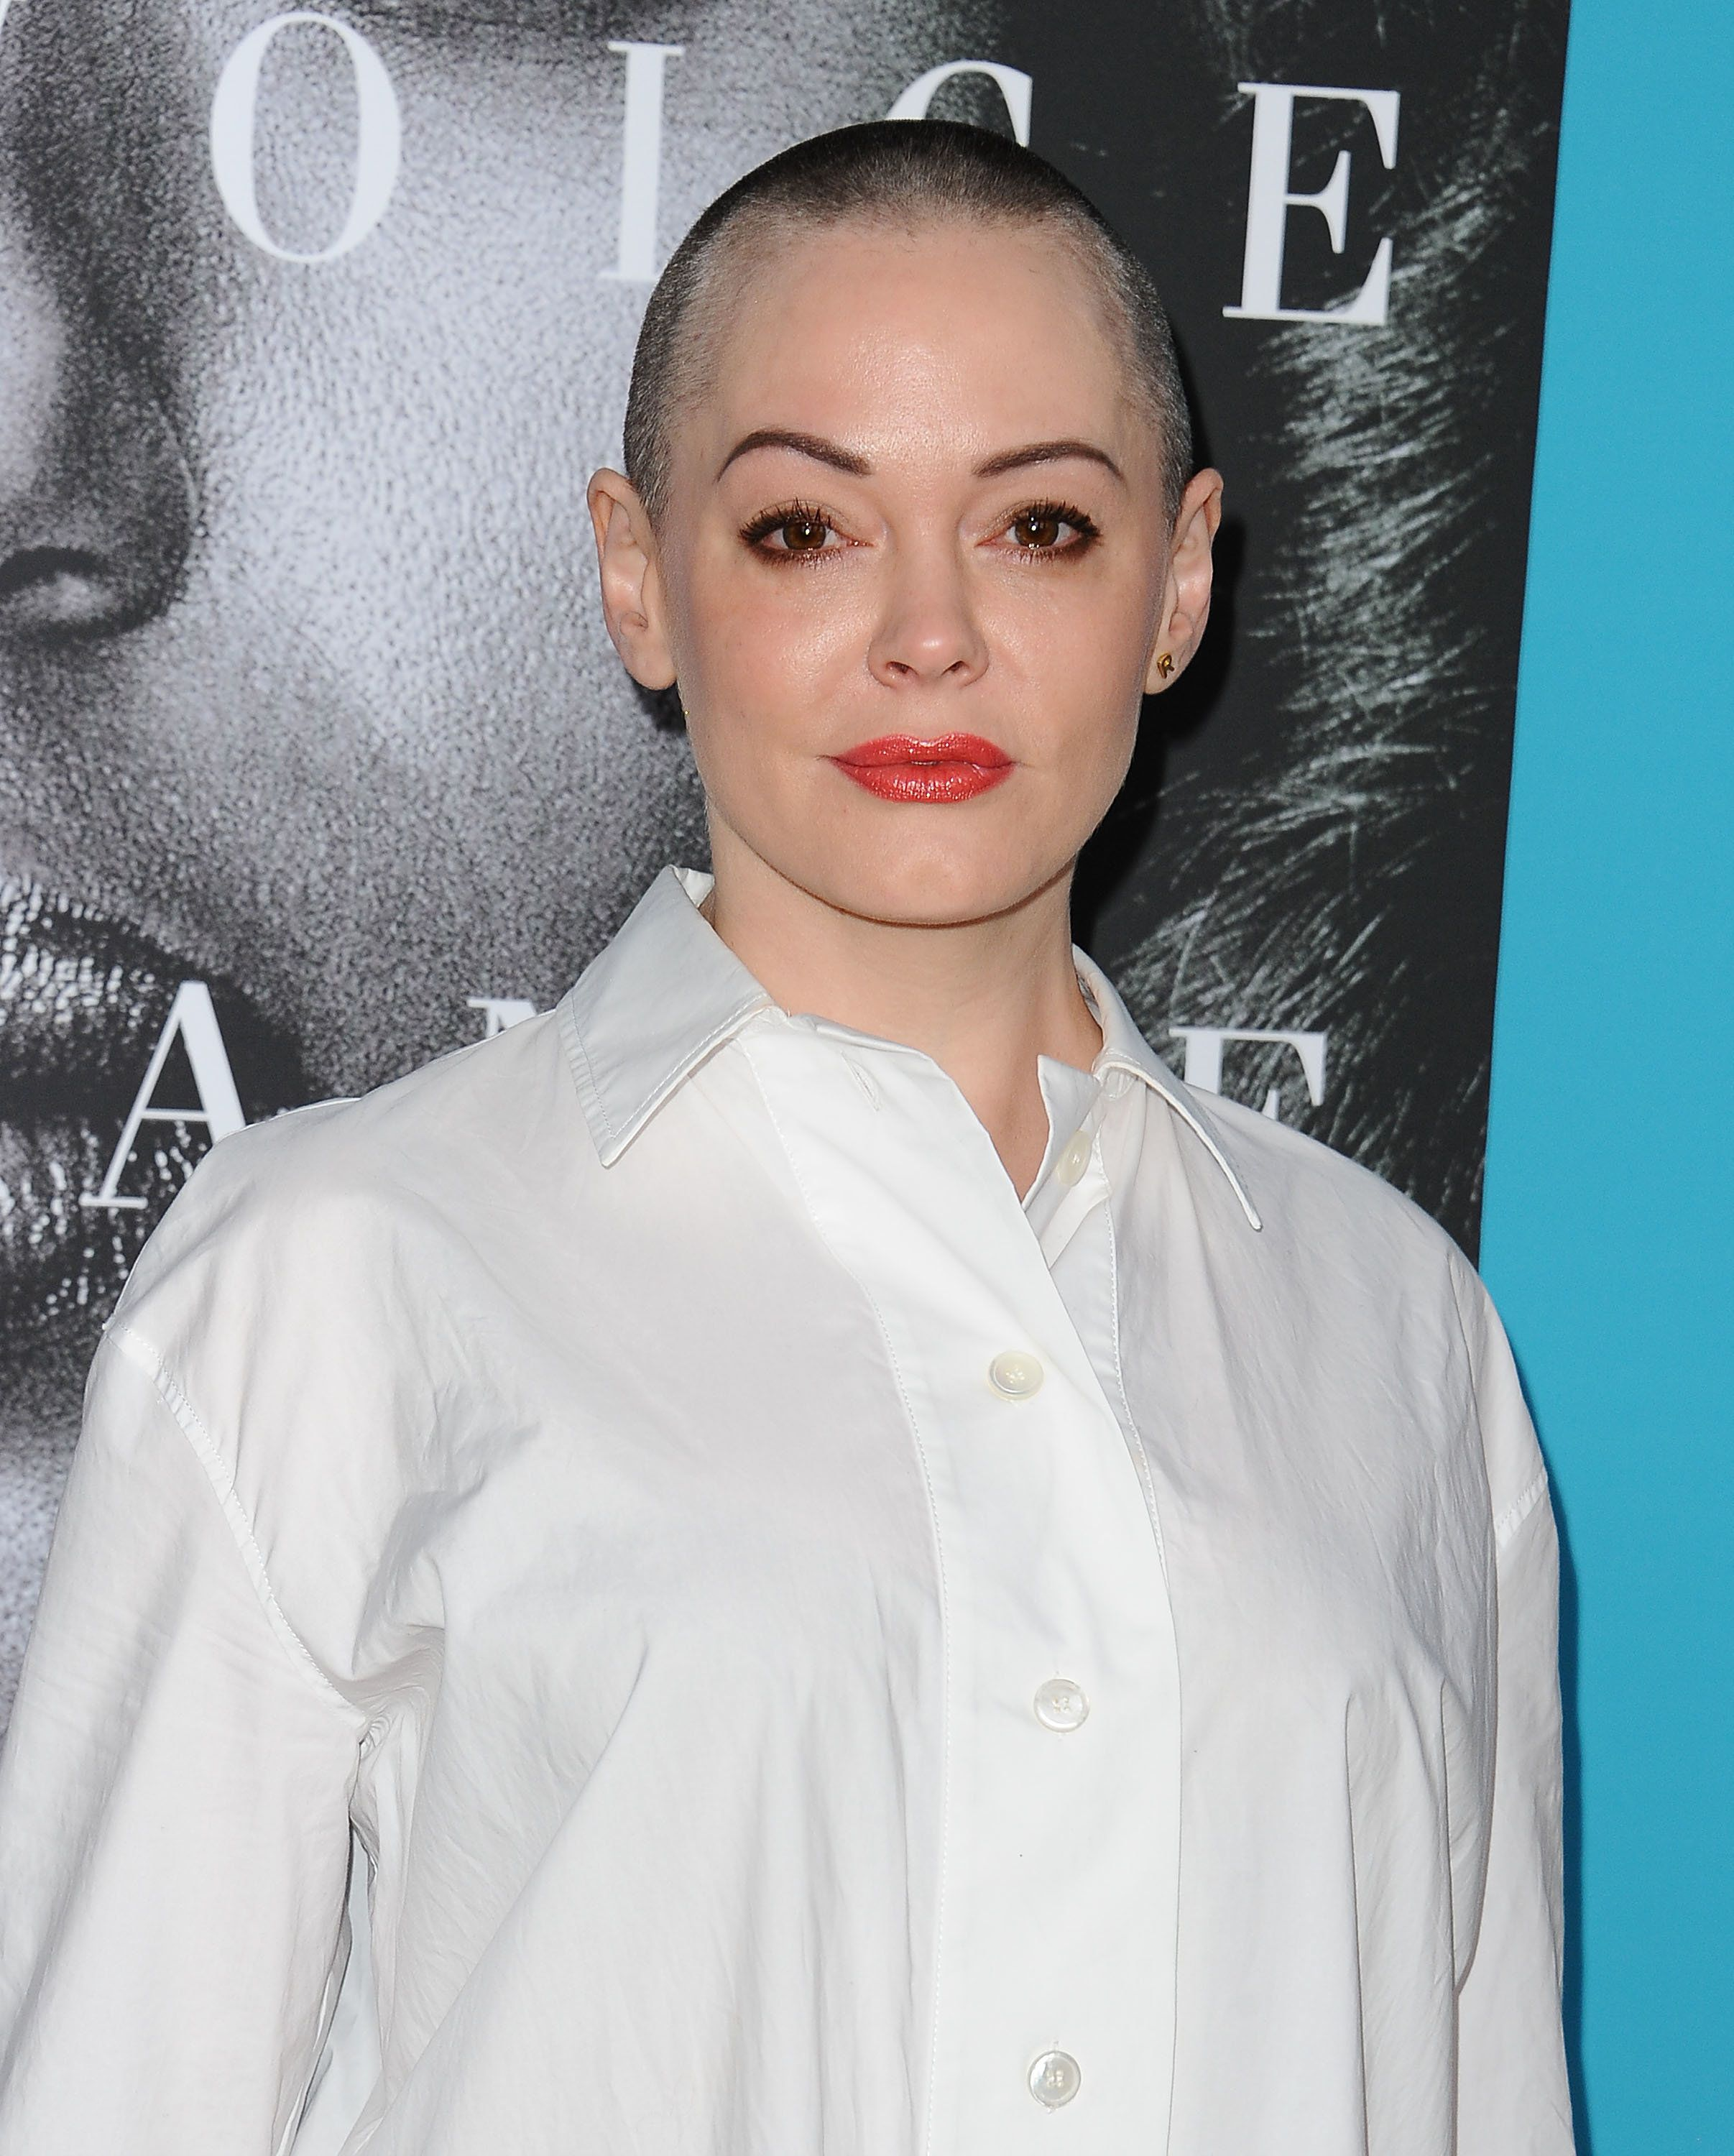 Rose McGowan's Twitter Account Suspended As She Renews Attacks on Hollywood